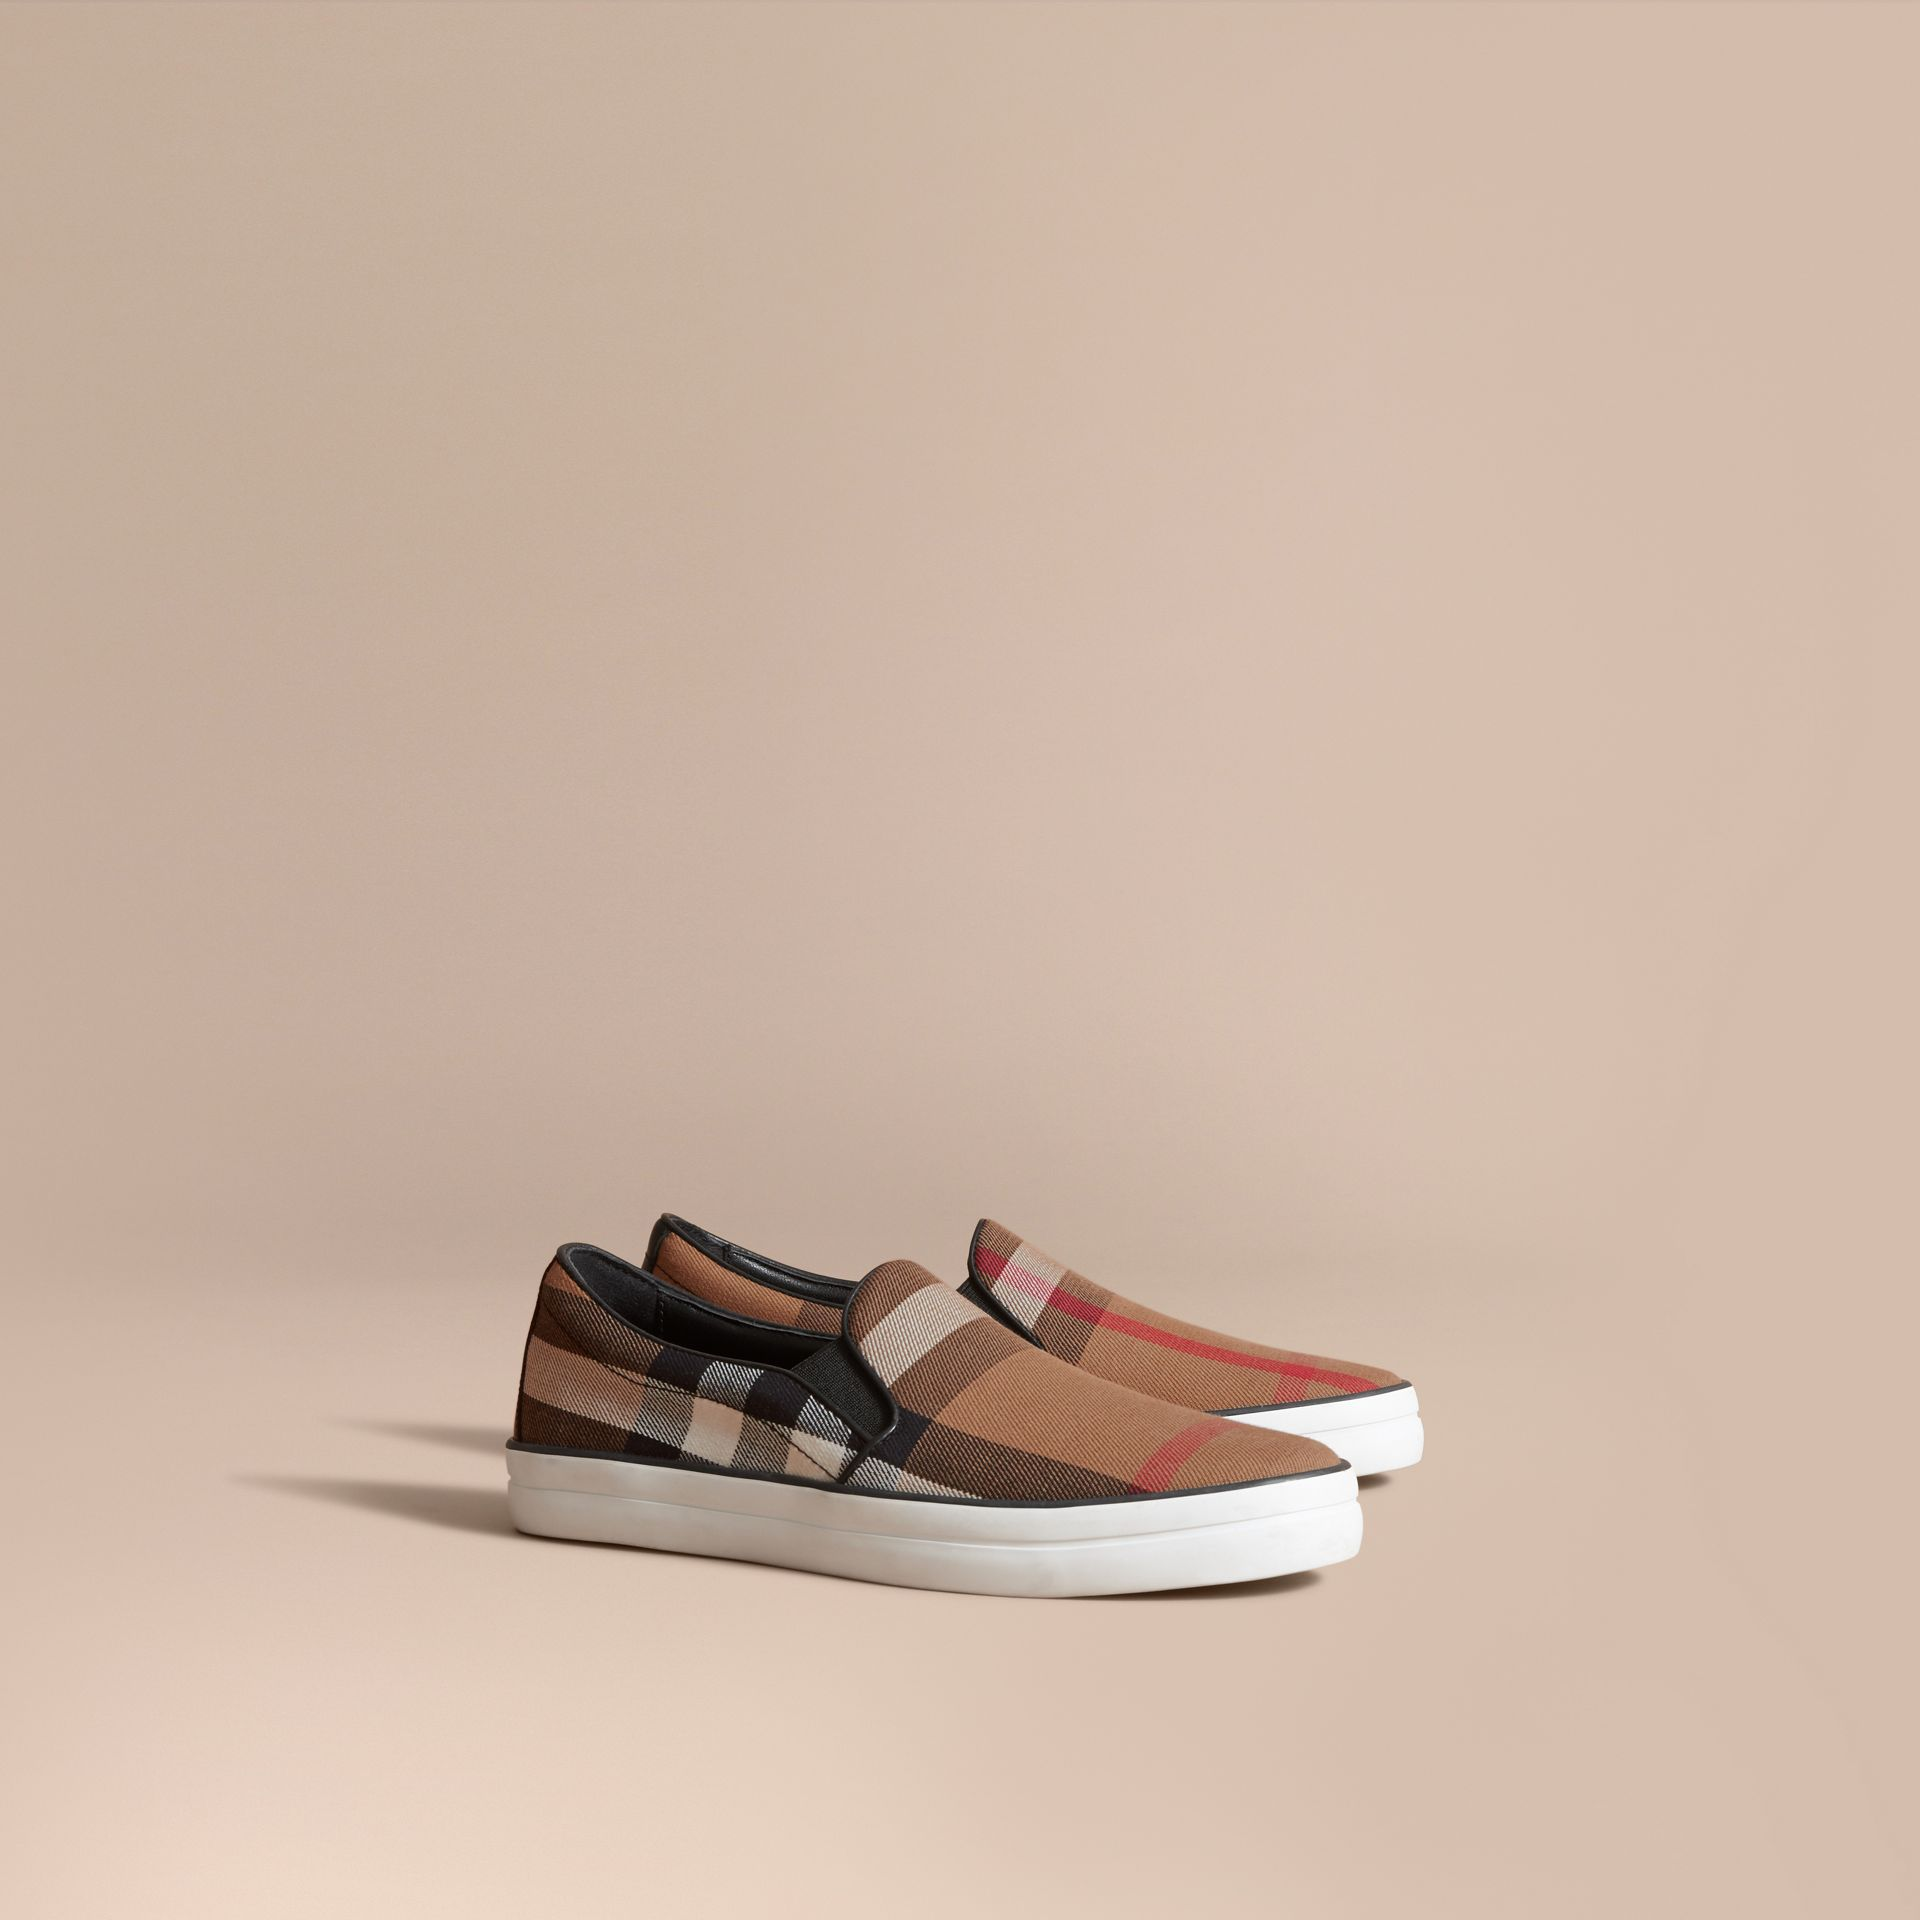 House Check and Leather Slip-on Sneakers in Classic - Women | Burberry United States - gallery image 0